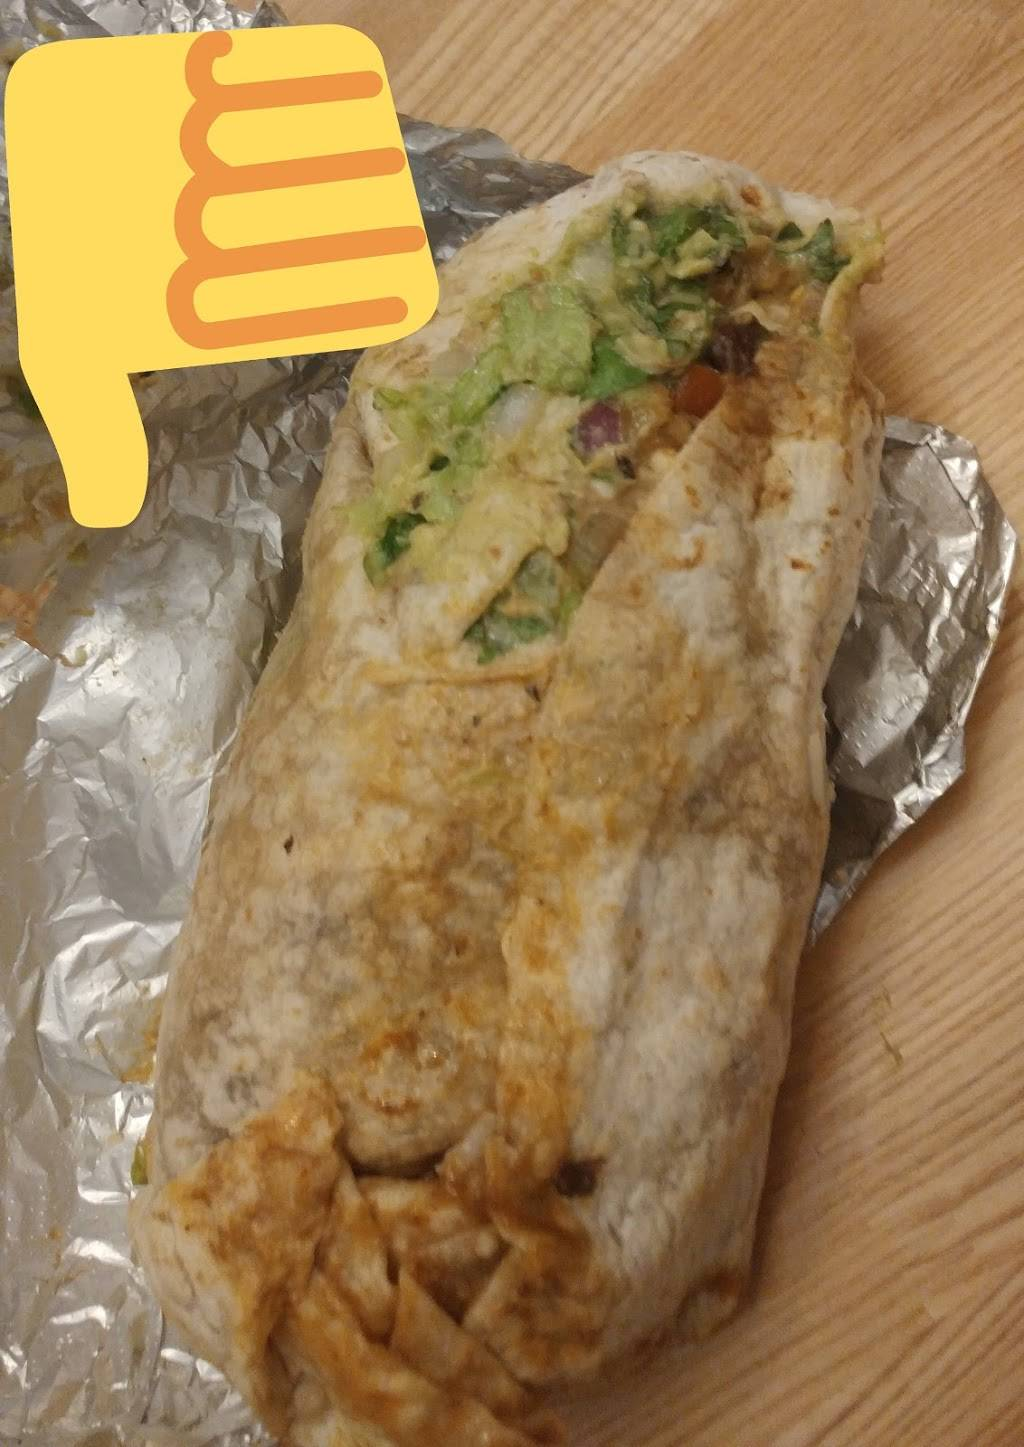 Chipotle Mexican Grill   restaurant   1211 Golf Rd, Rolling Meadows, IL 60008, USA   8474392530 OR +1 847-439-2530